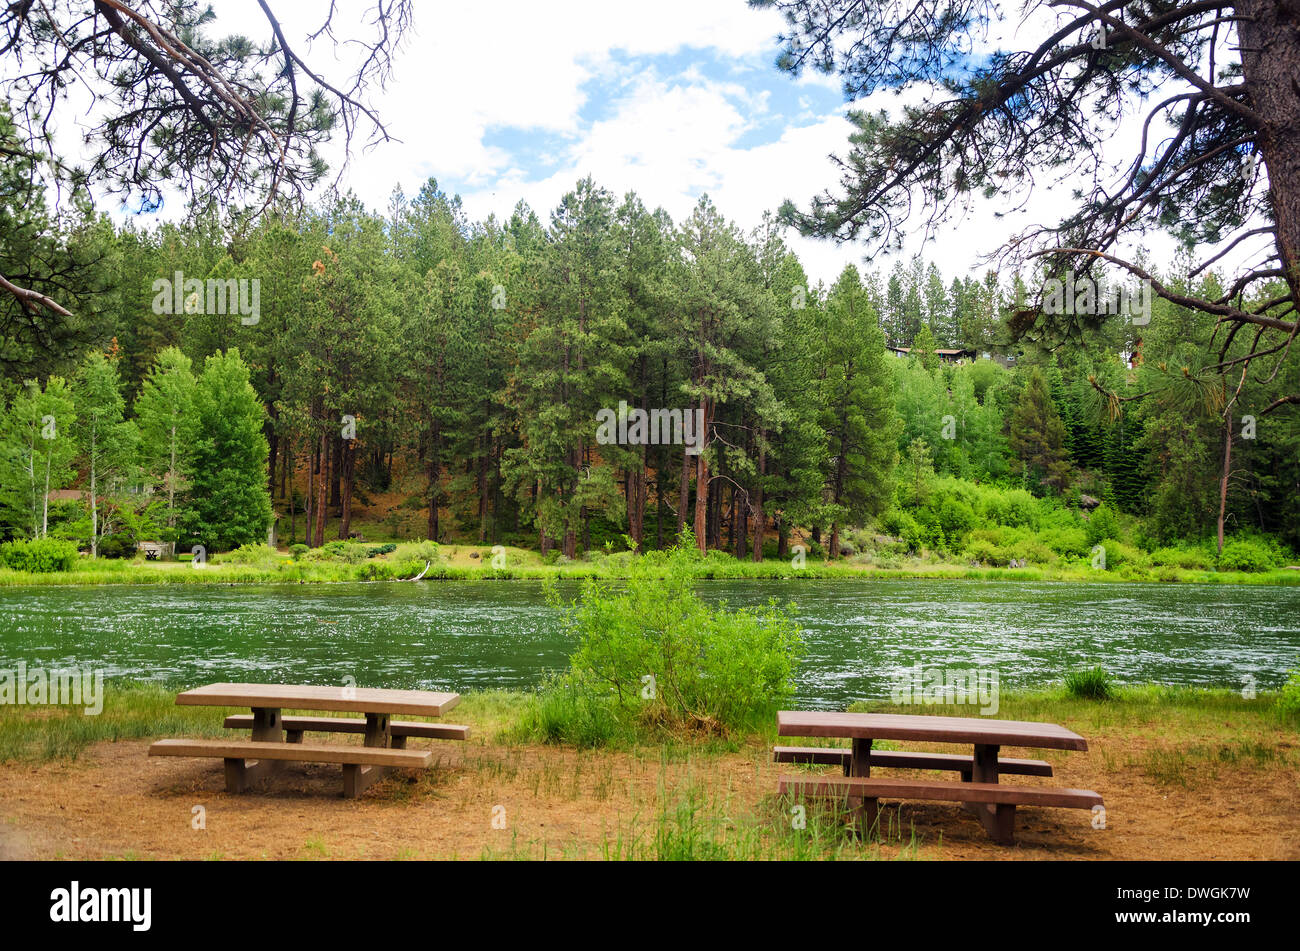 Deschutes River in Central Oregon slowing meandering past a pair of picnic tables - Stock Image